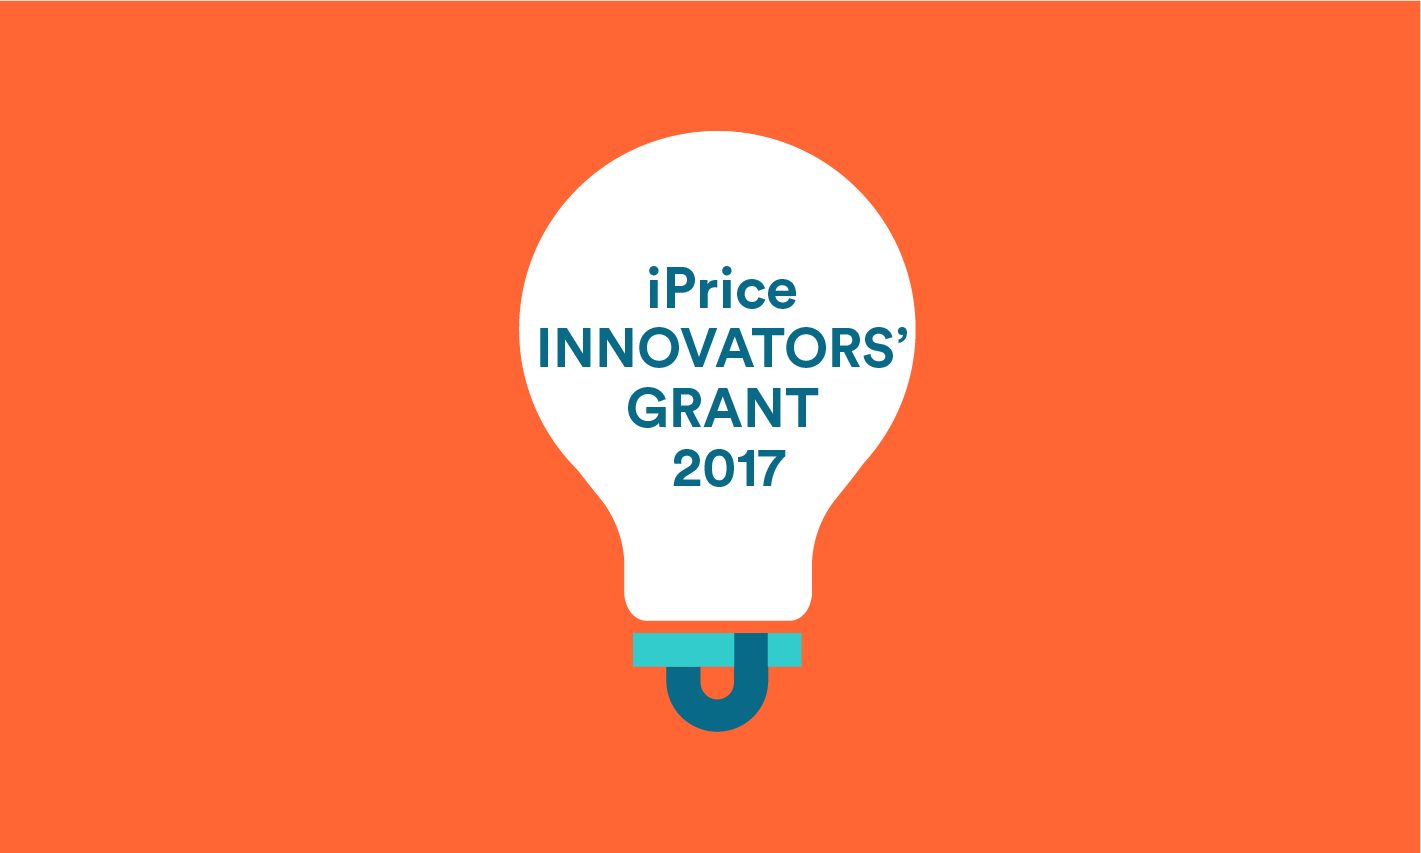 Apply for the iPrice Innovators' Grant 2017 (Worth up to USD $ 1,500)